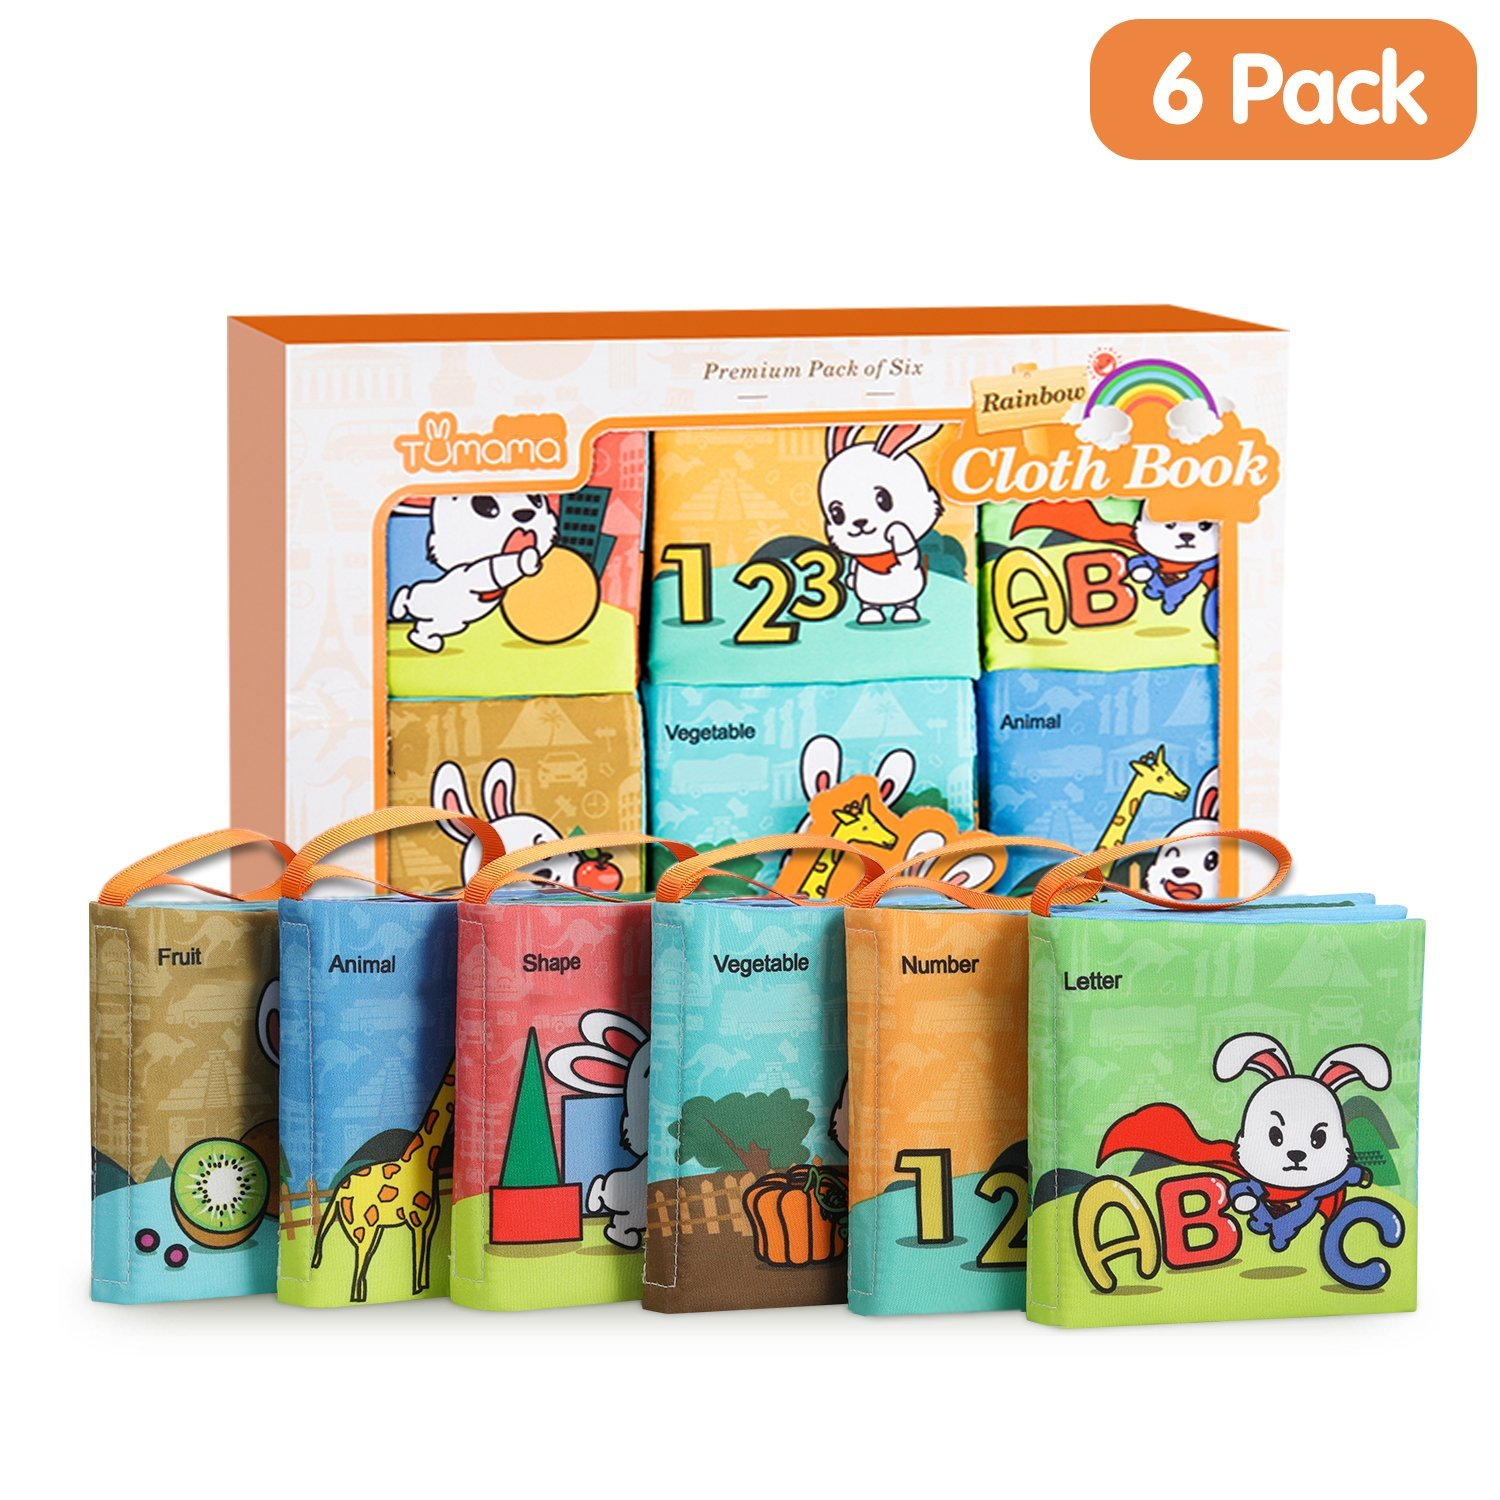 TUMAMA Soft Books Babies, Baby First Soft Books Early Education Toys Activity Crinkle Cloth Book Newborn, Toddler, Infants Kids - Pack of 6